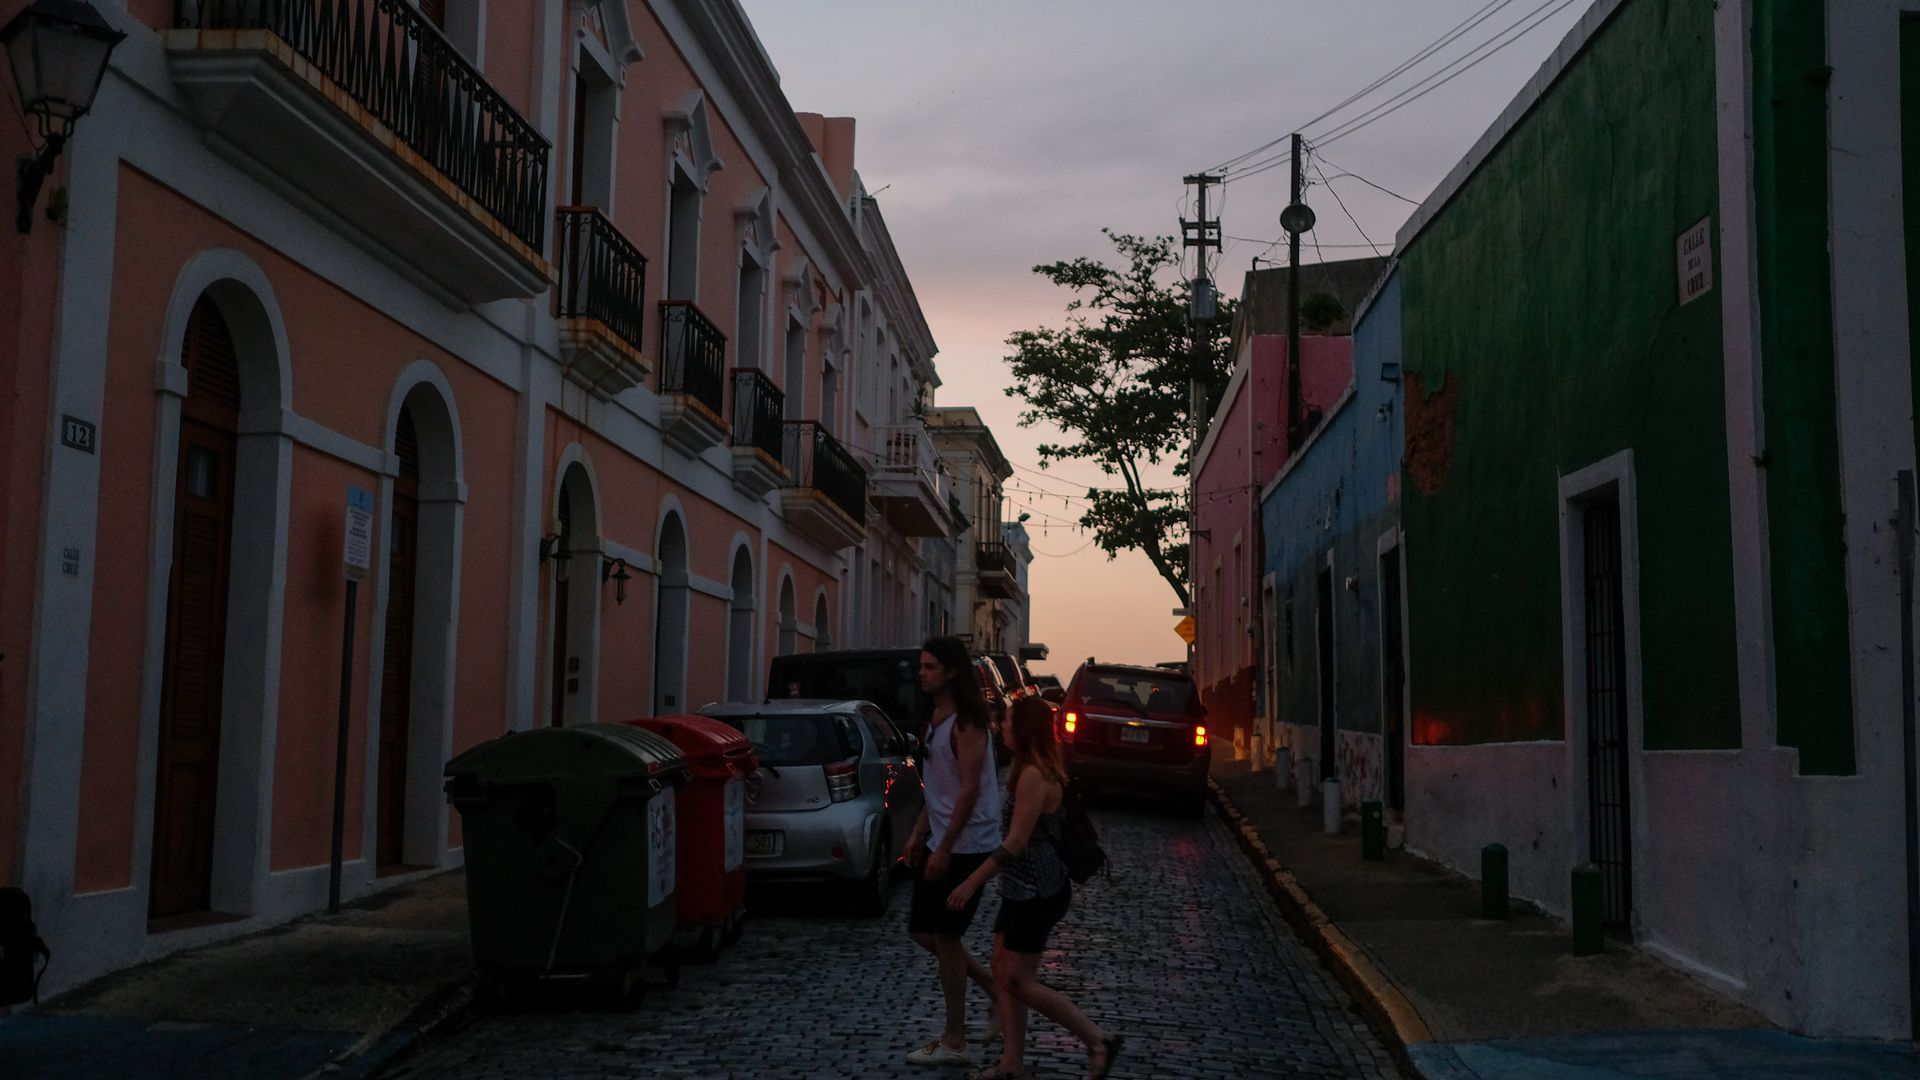 Tourists walk along a street with no electricity.